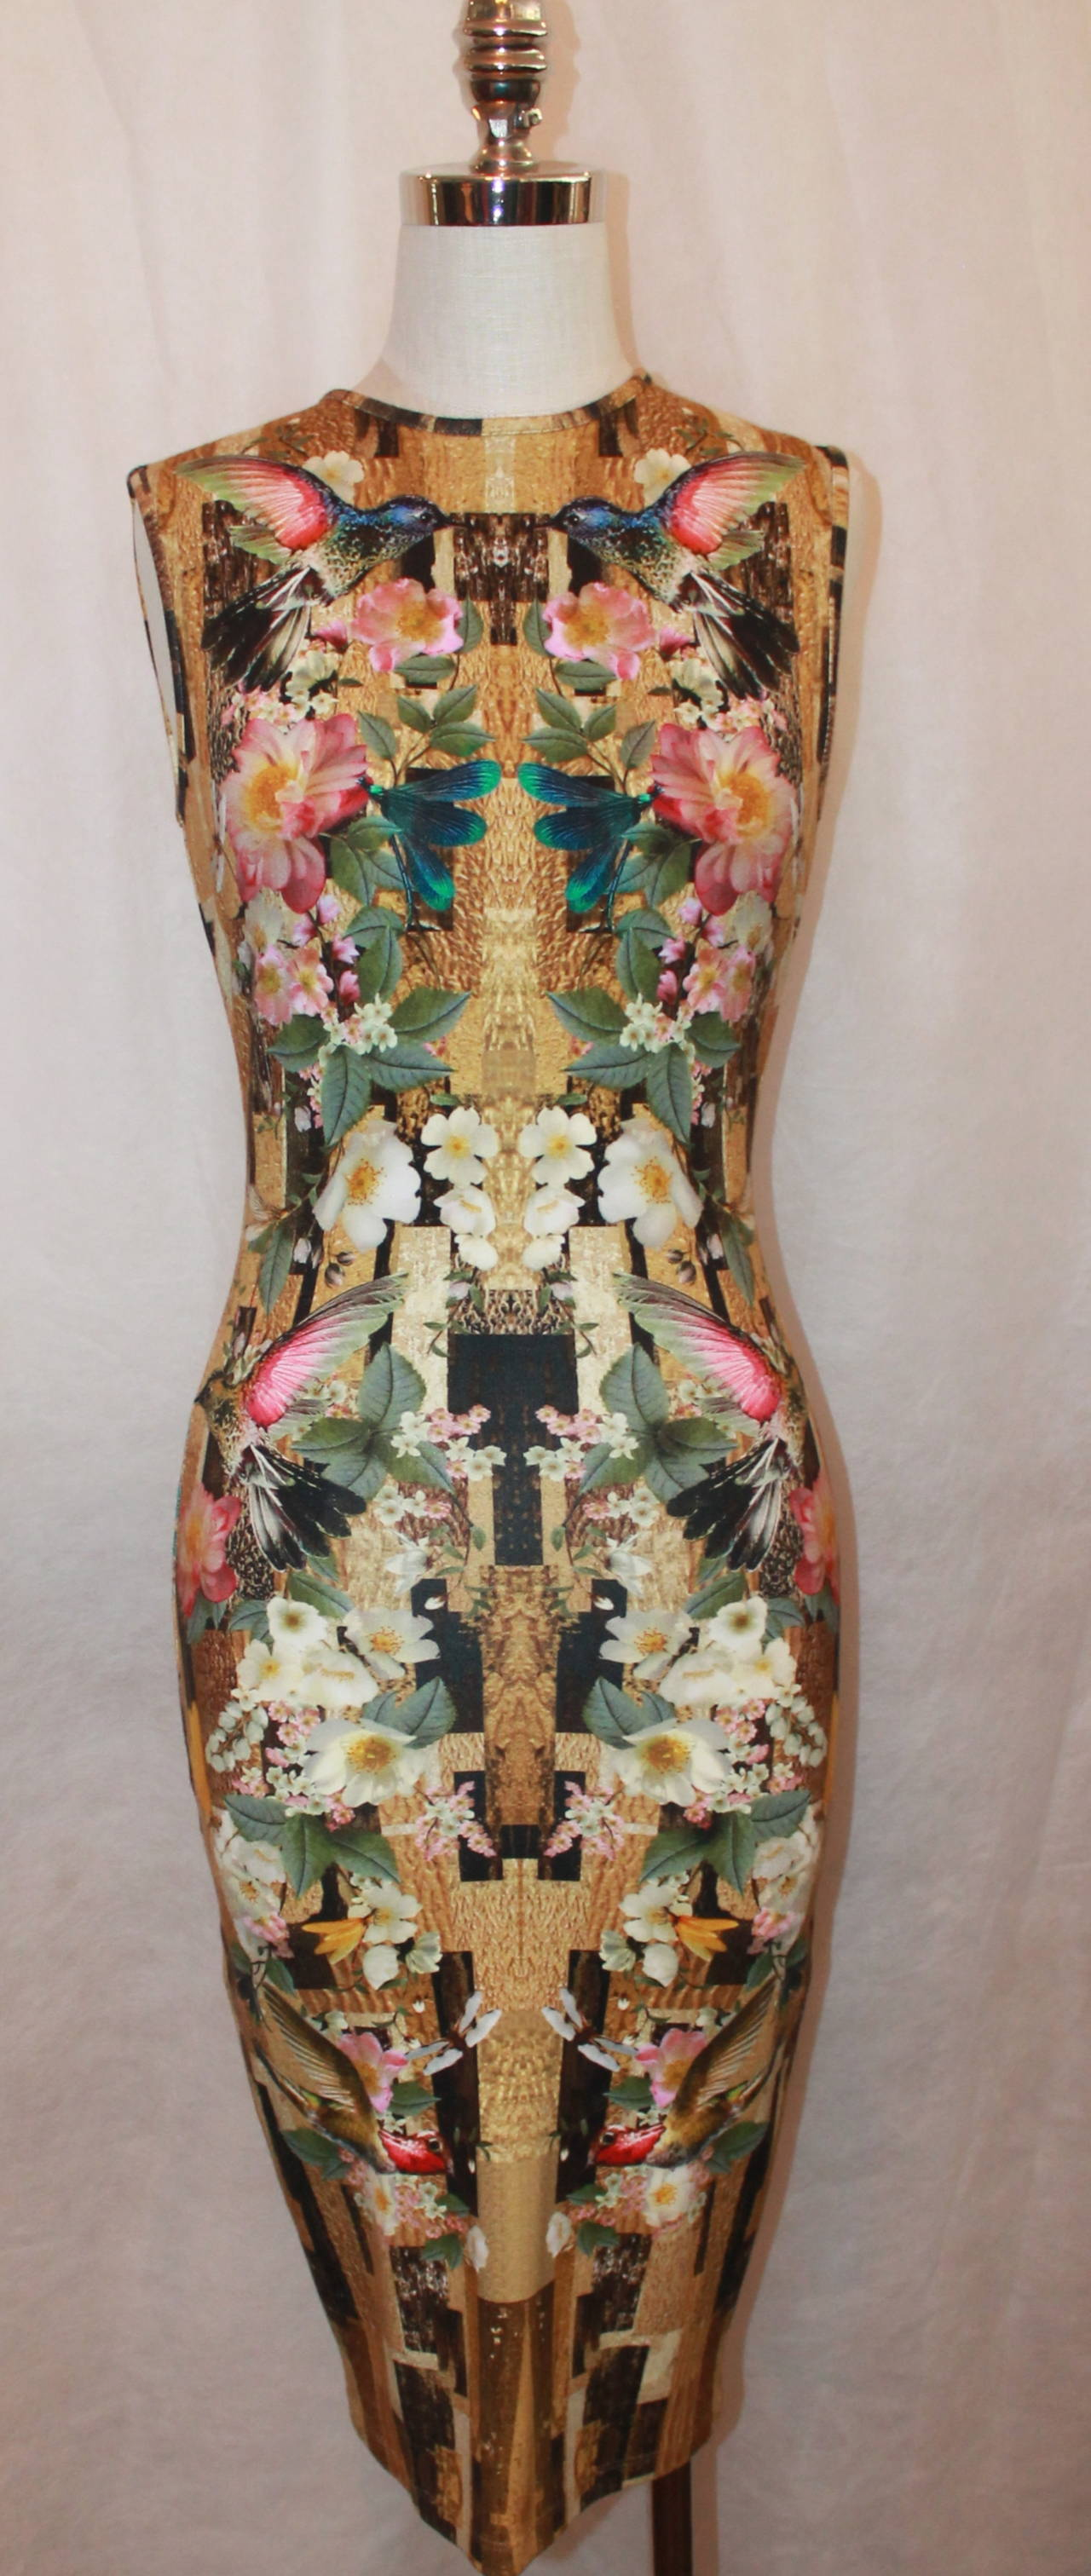 Alexander McQueen 2013 Resort Hummingbird & Floral Print Fitted Dress - M 2